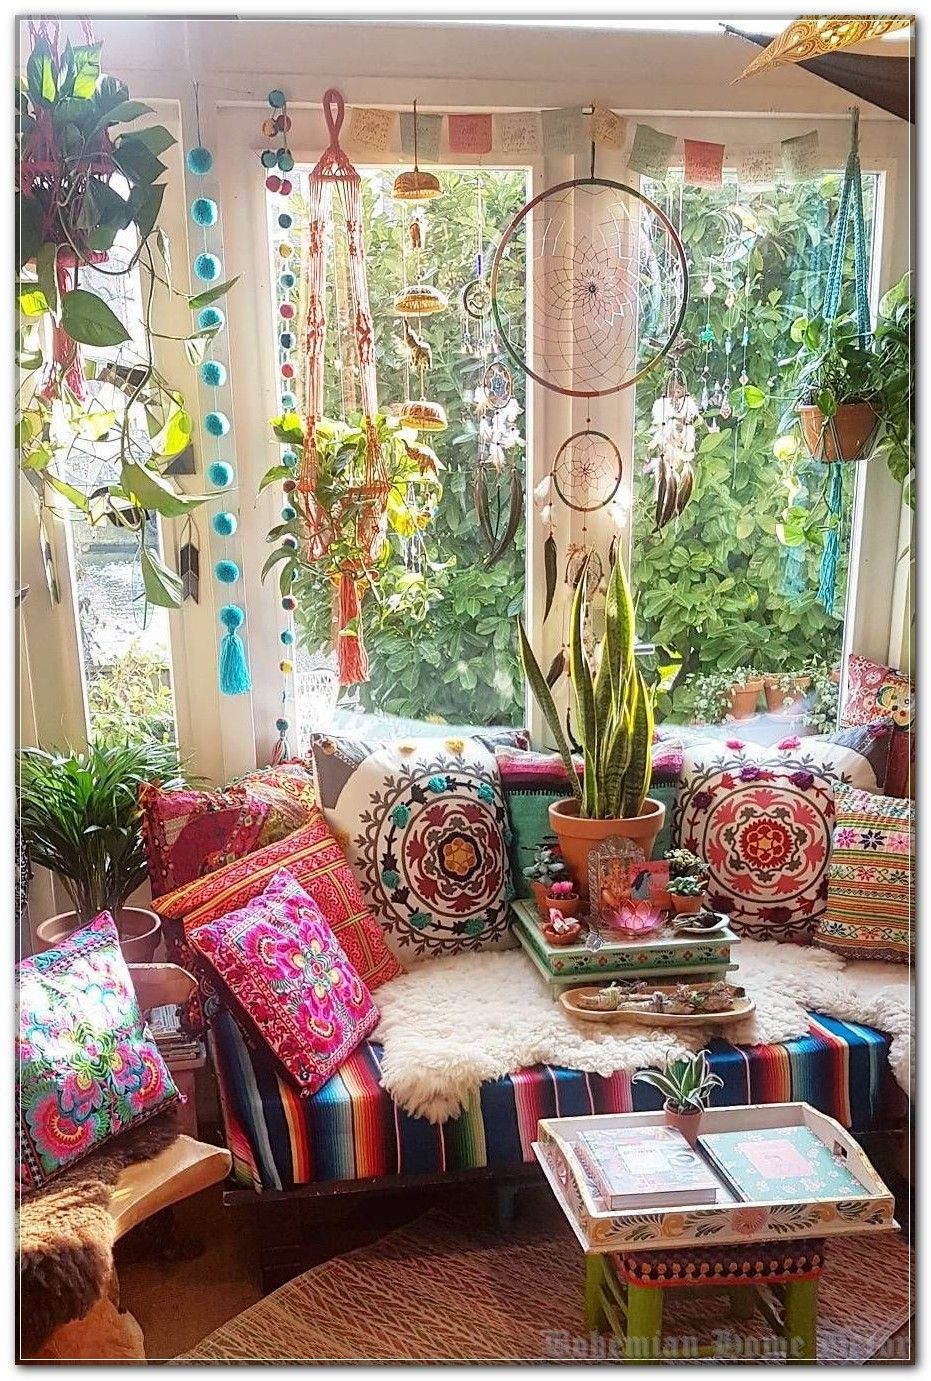 10 Reasons Your Bohemian Home Decor Is Not What It Should Be